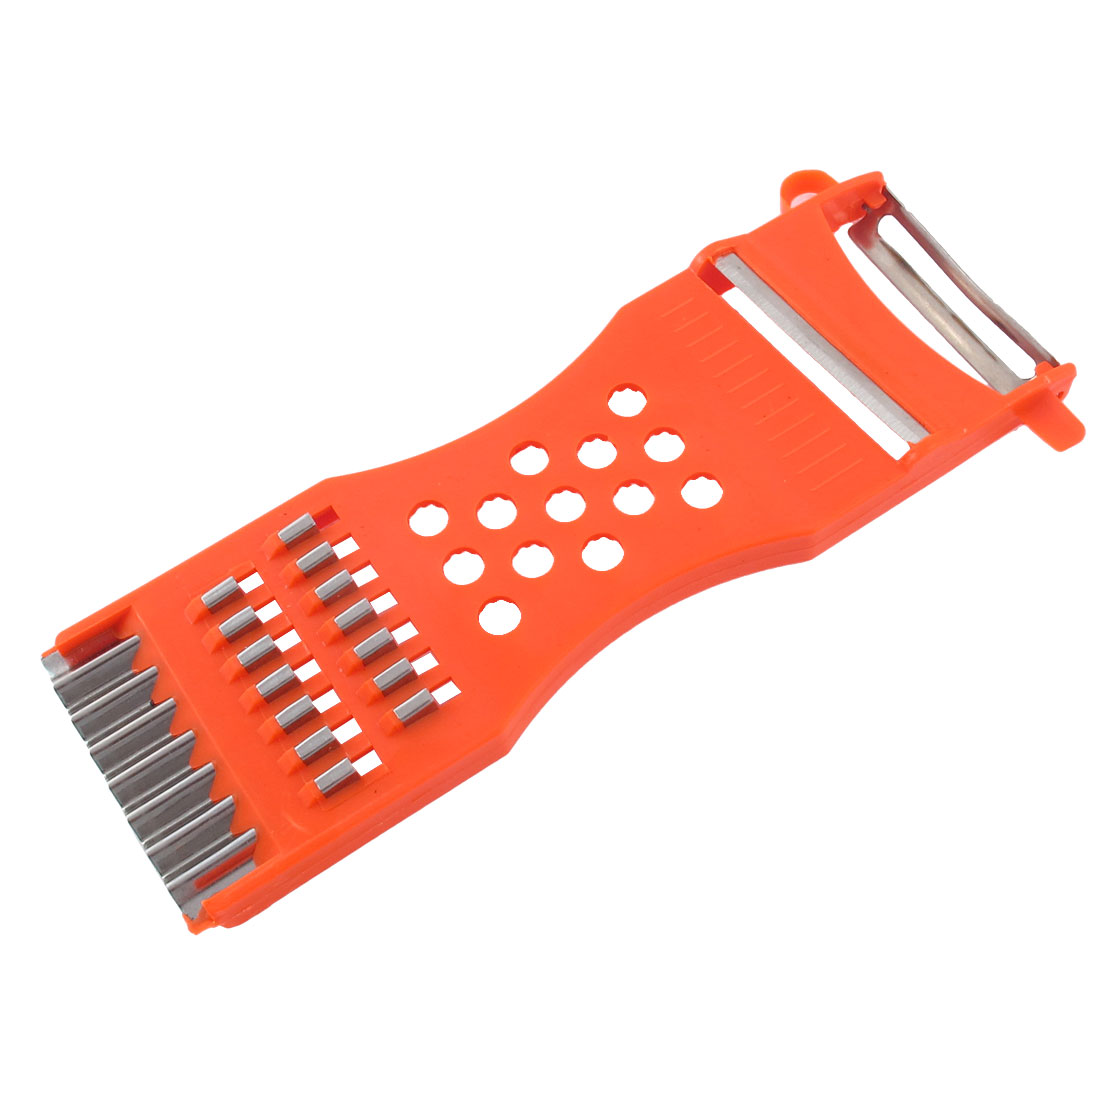 Kitchen Vegetable Fruit Grater Slicer Peeler Shredder Carving Tool 6.7'' Long